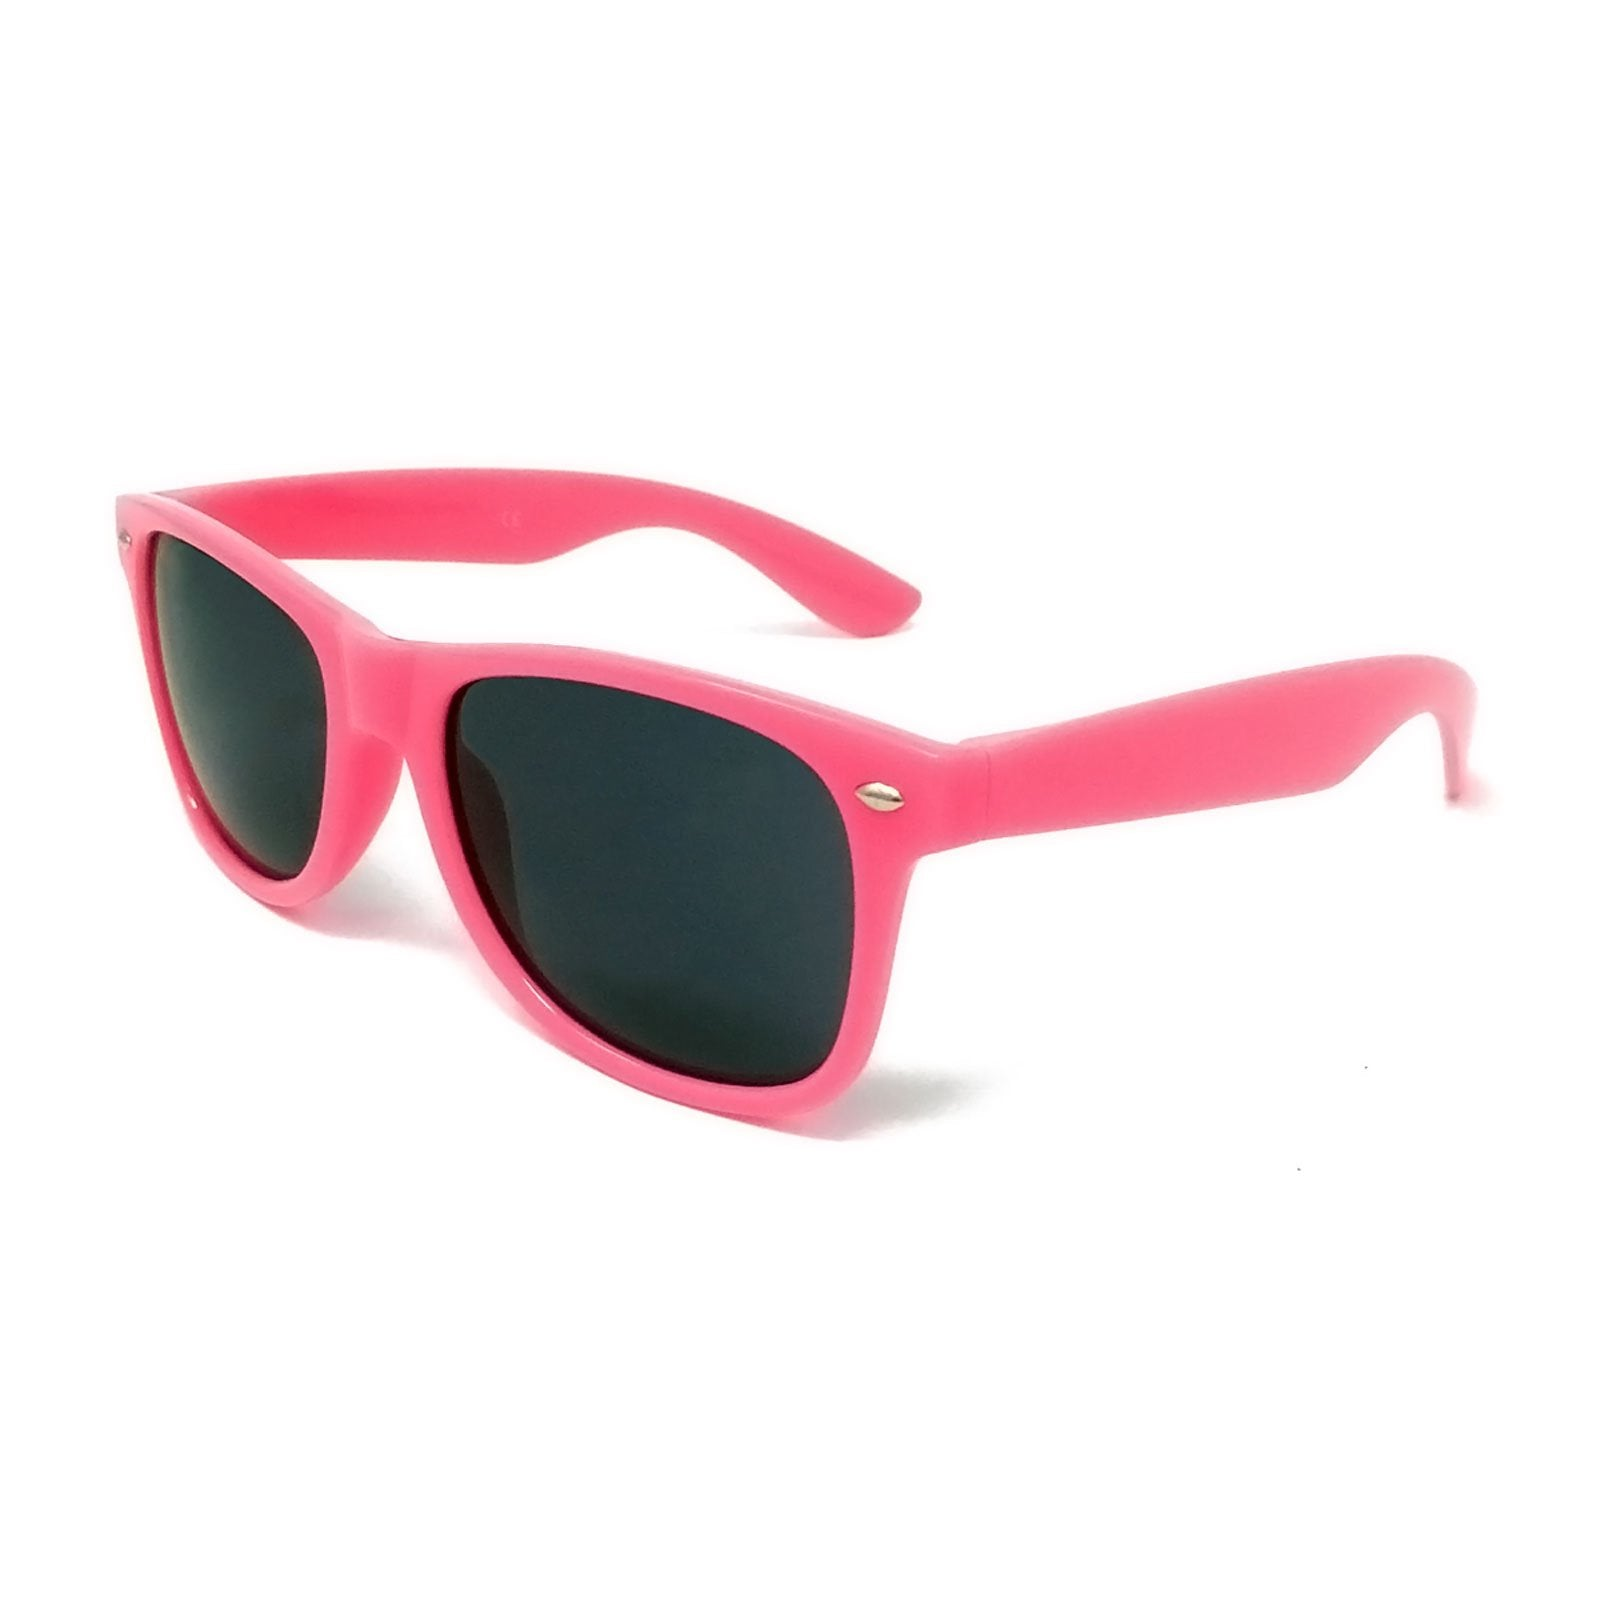 Wholesale Classic Sunglasses - Hot Pink Frame, Black Lens